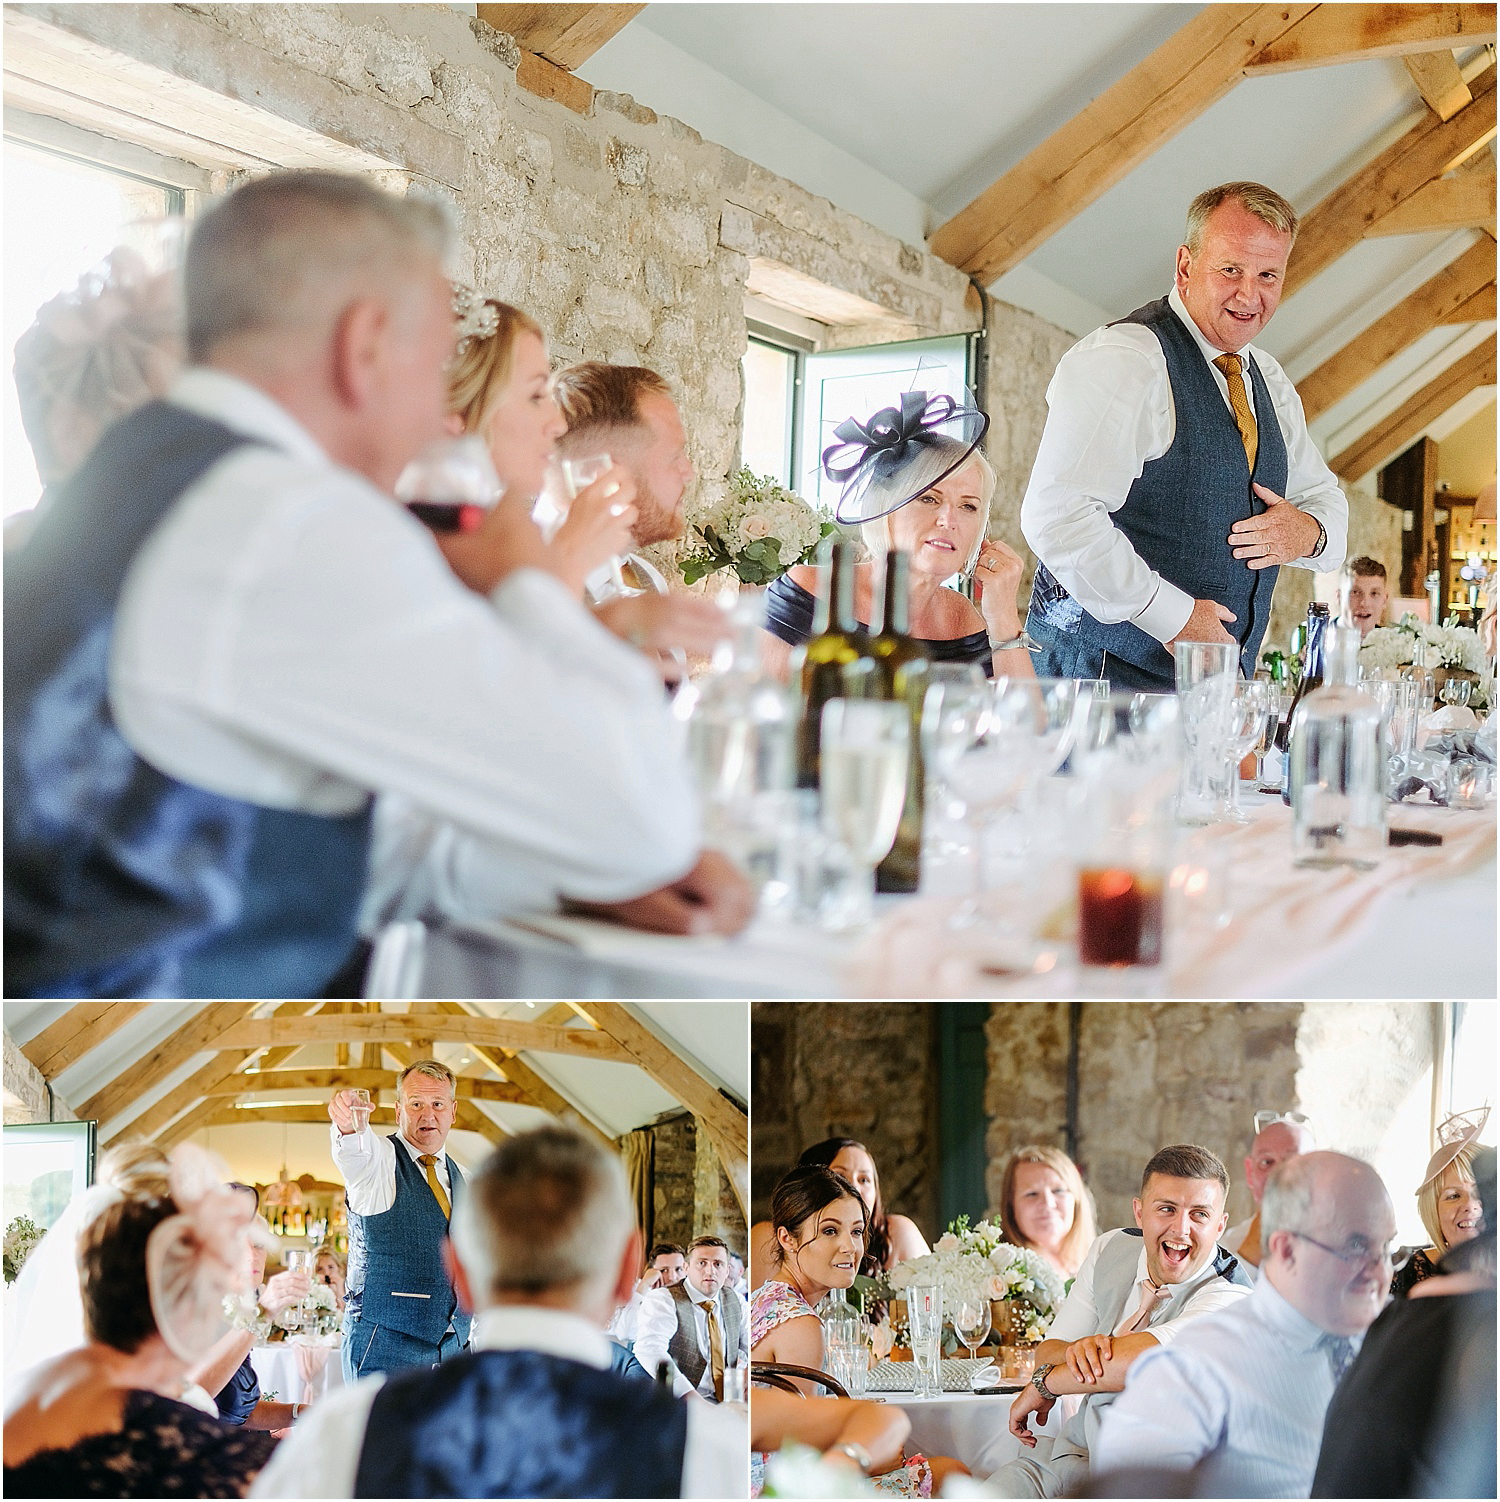 Wedding at Healey Barn - wedding photography by www.2tonephotography.co.uk 081.jpg